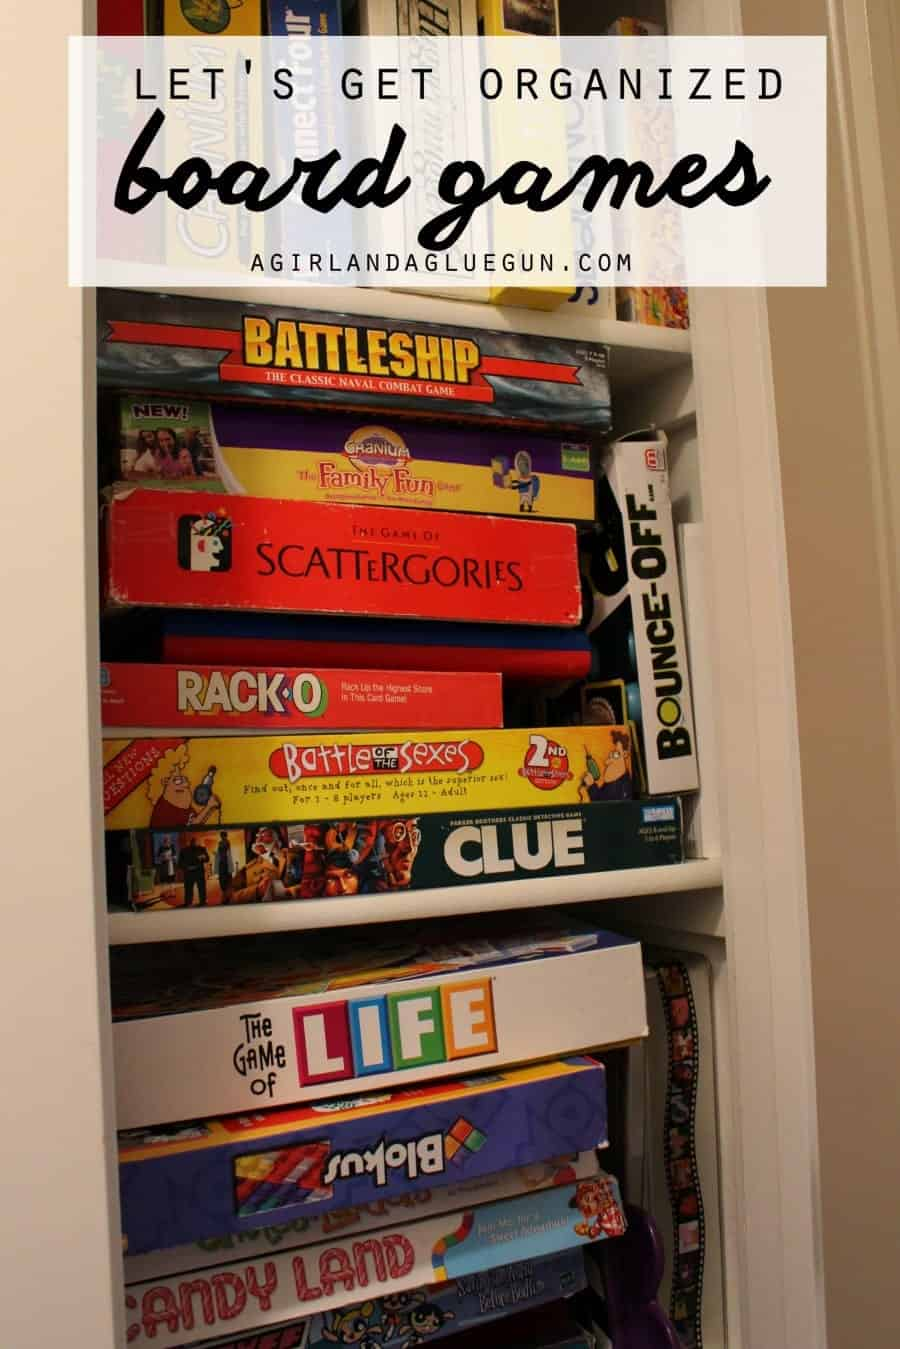 let's get organized board games